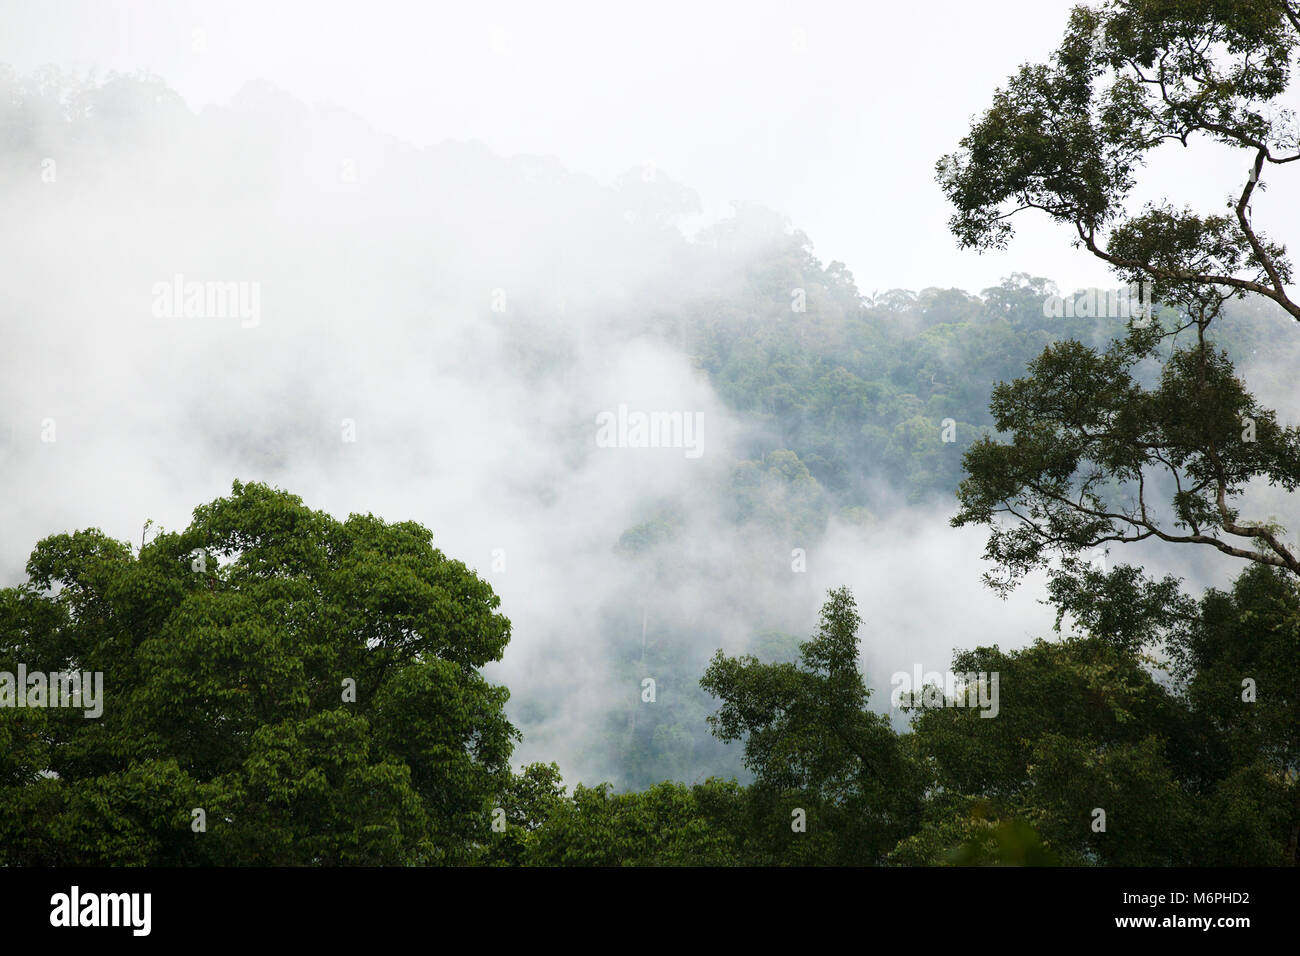 Tropical lowland dipterocarp rainforest canopy in the mist, Danum Valley Conservation Area - Stock Image